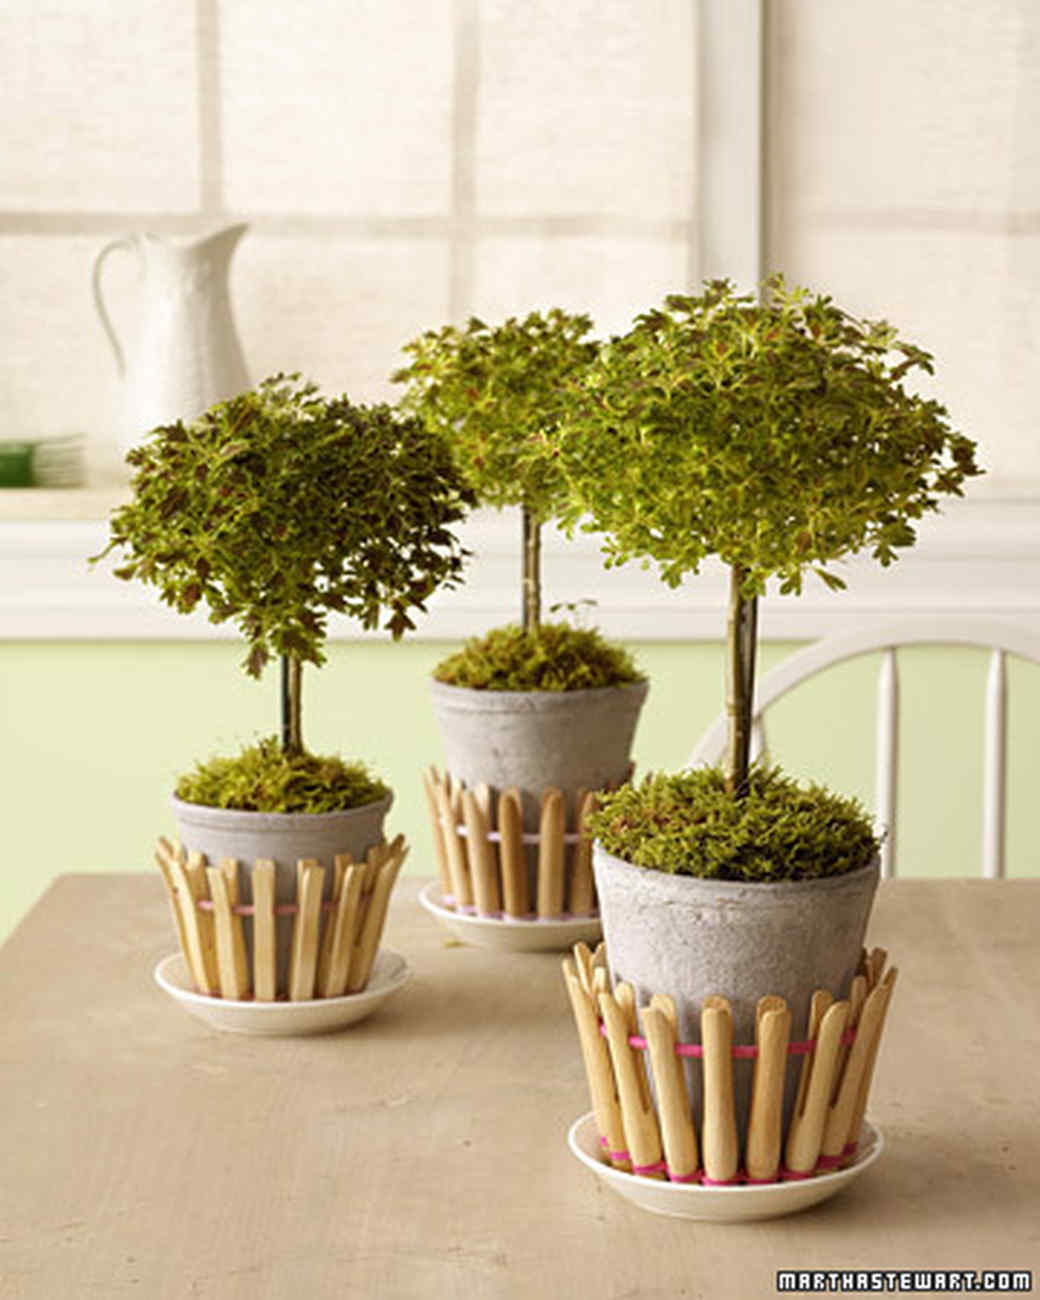 Decorative Flowerpots And Planters Martha Stewart Love Potted Plants